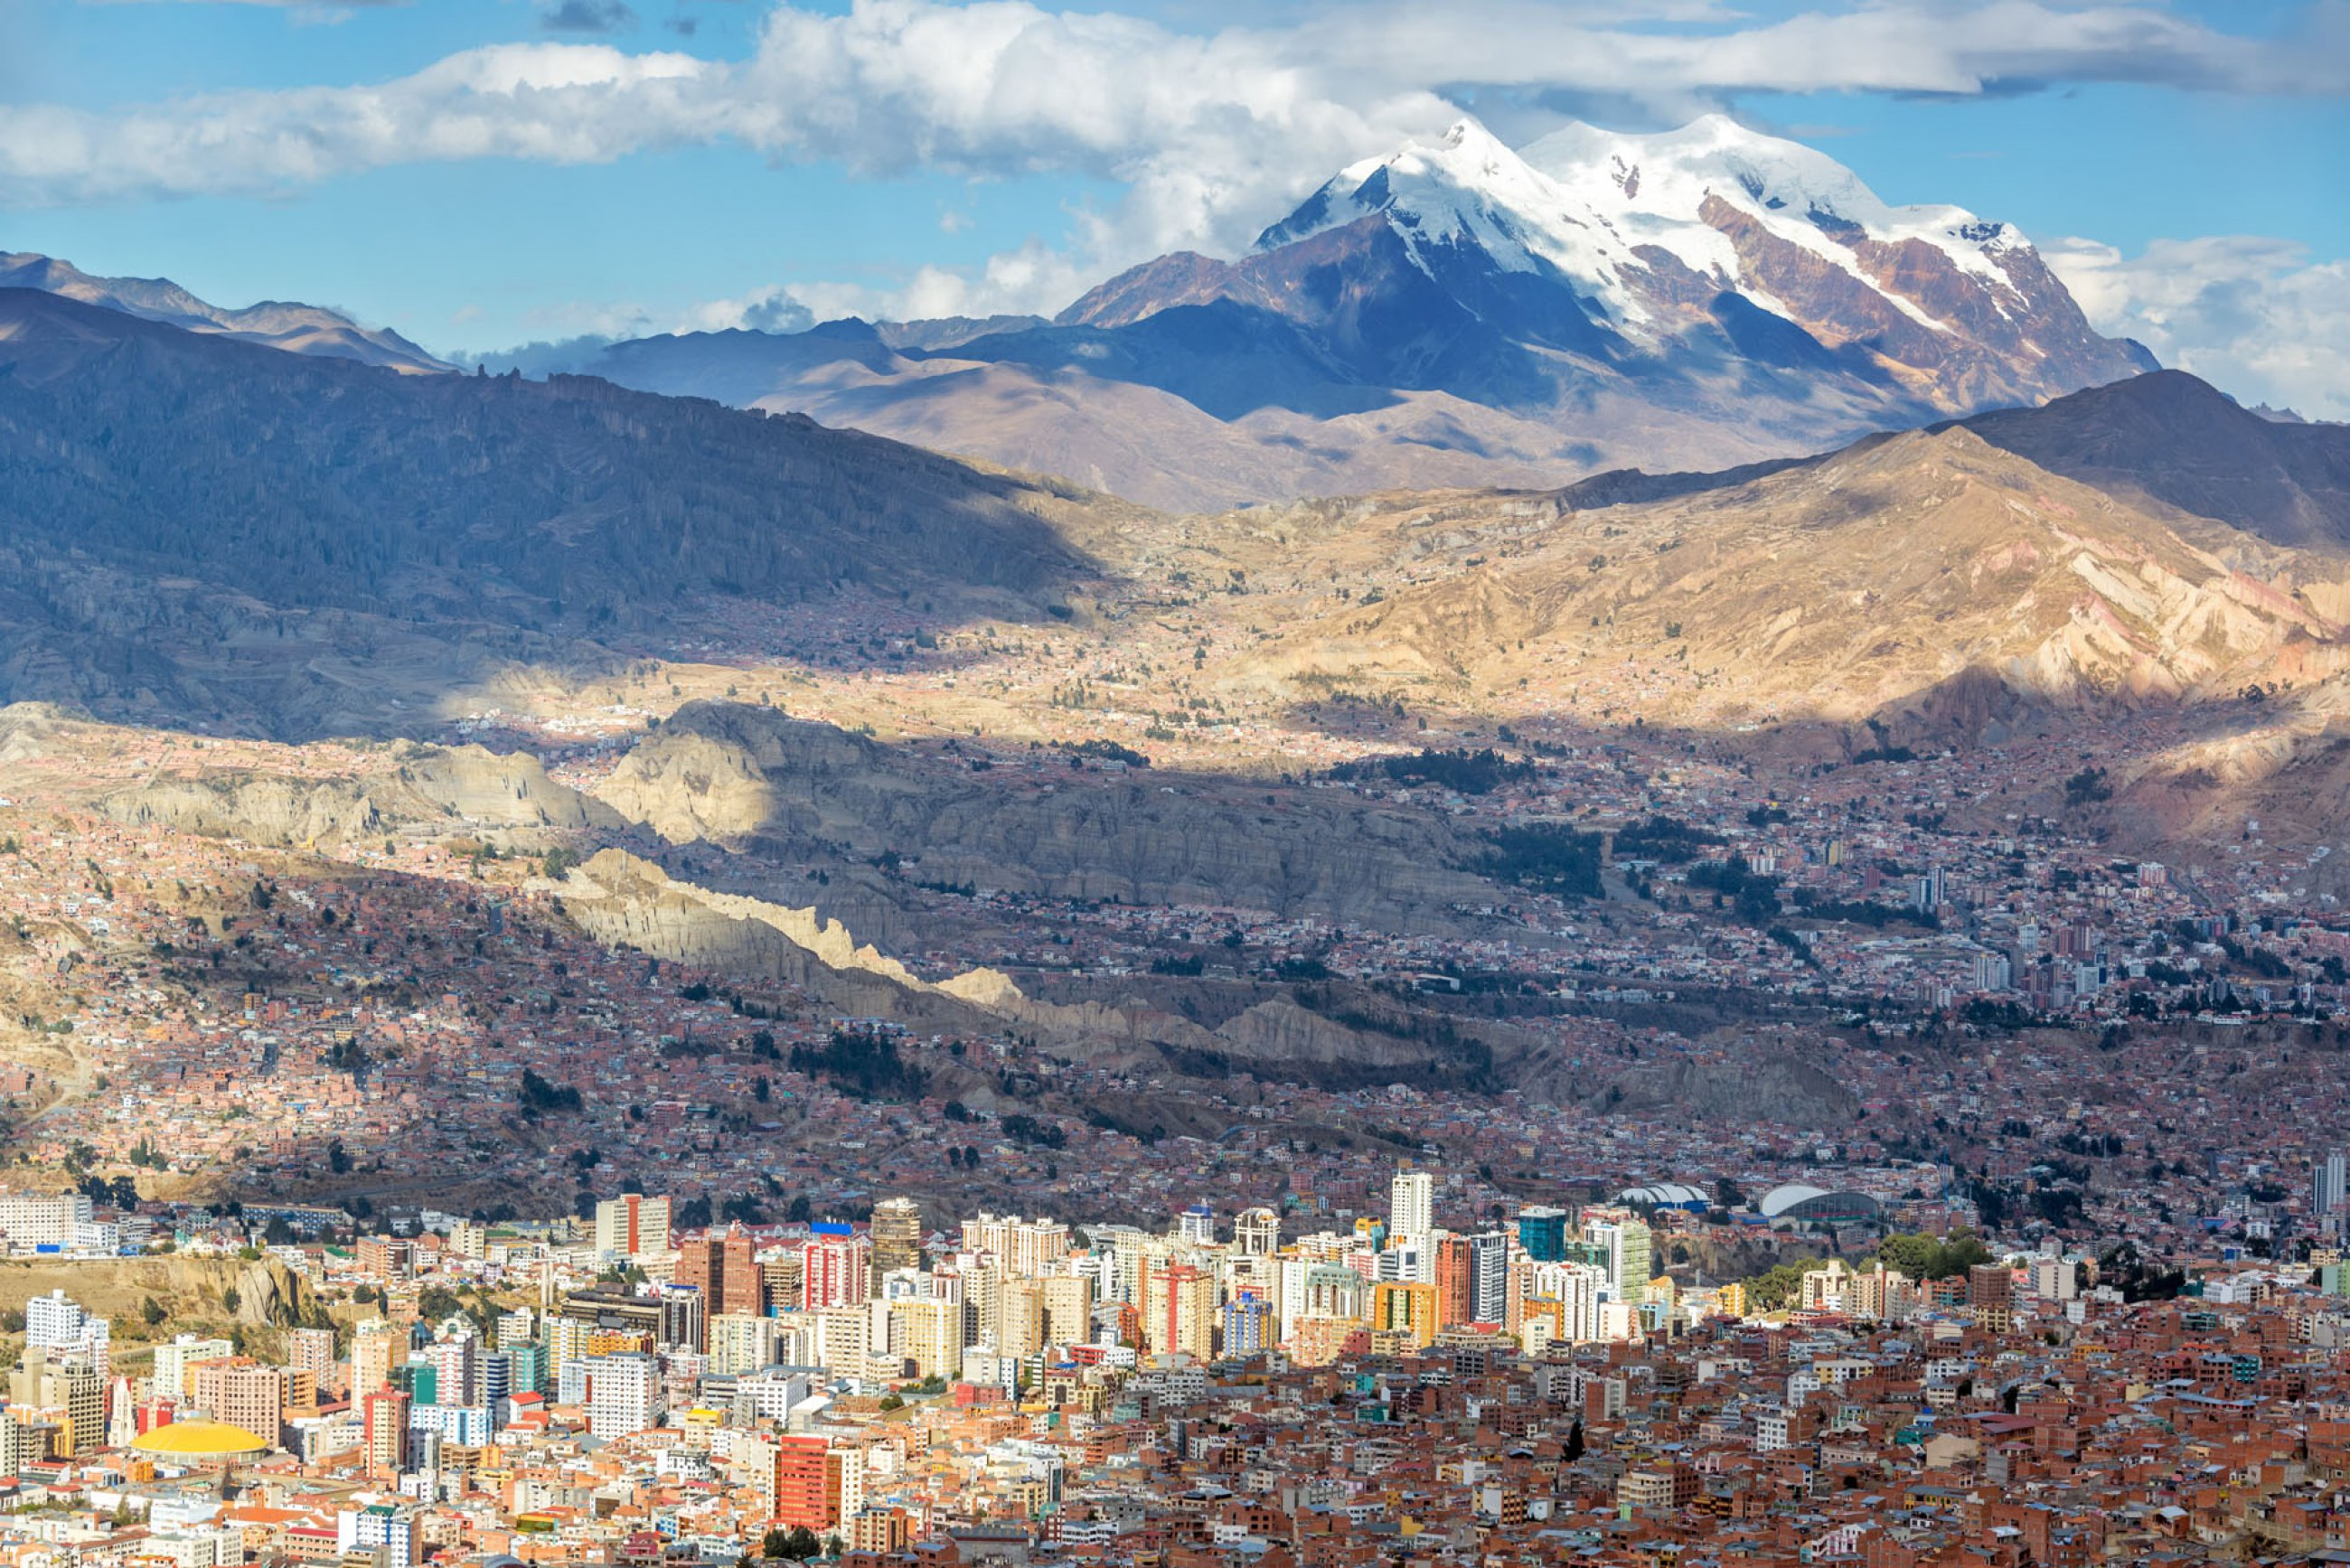 https://bubo.sk/uploads/galleries/5014/bolivia-la-paz-shutterstock-212973553.jpg